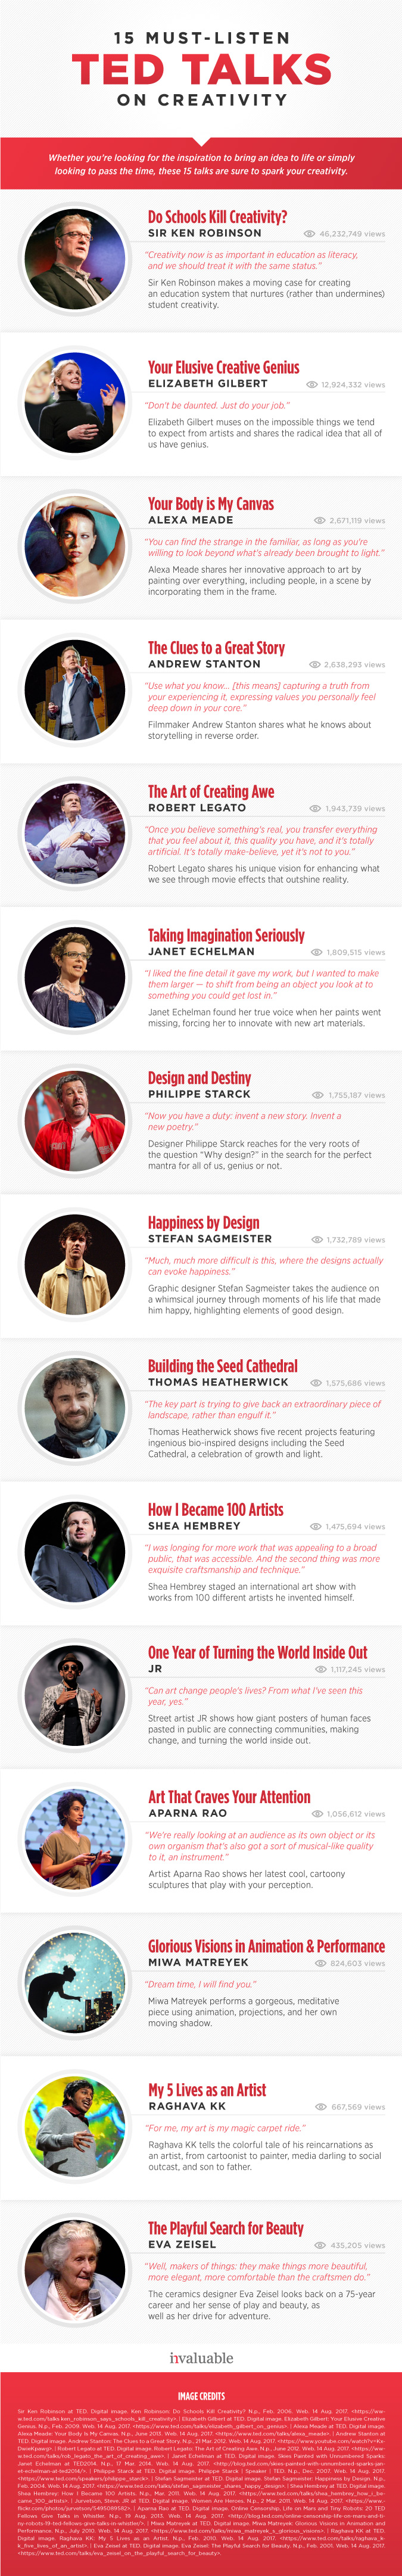 15 Inspirational TED Talks on Creativity - Infographic